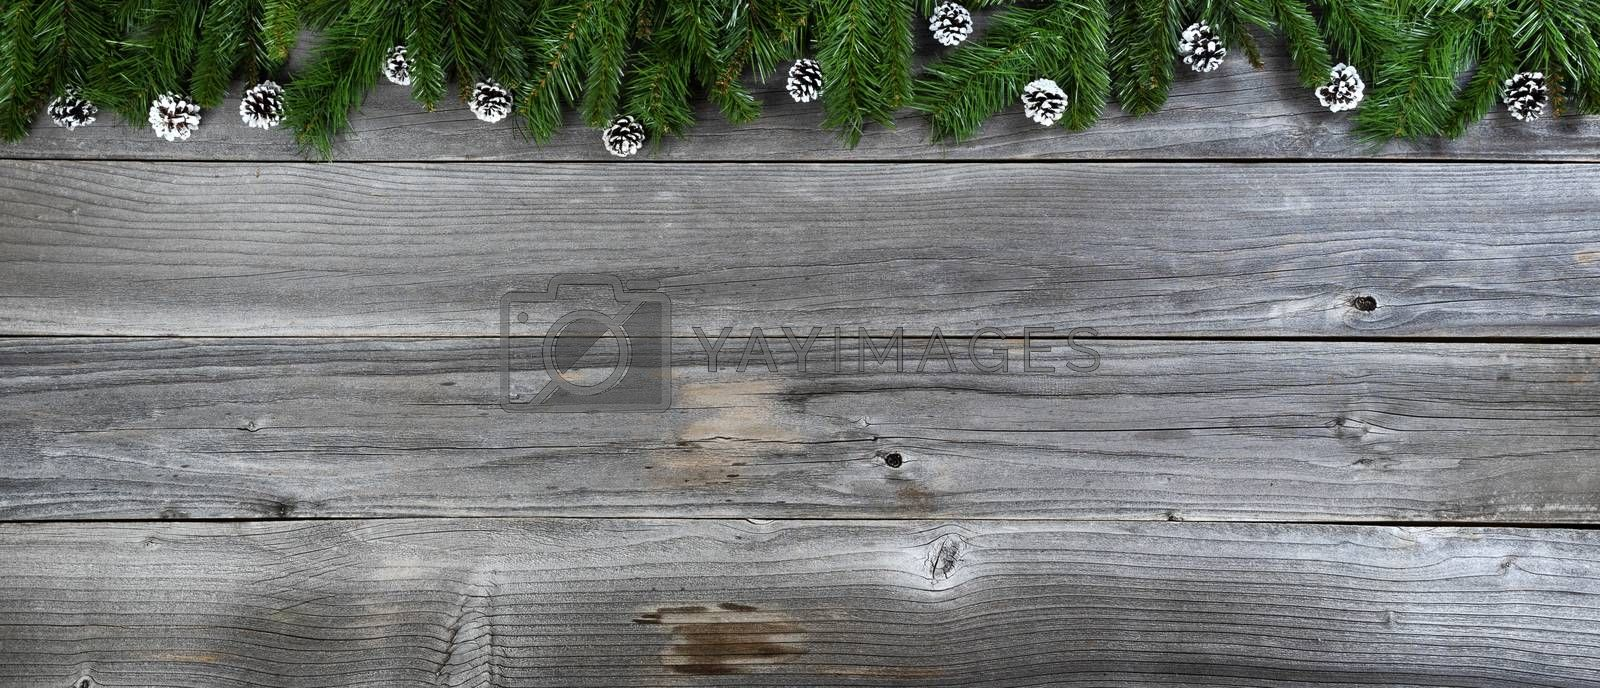 Merry Christmas and Happy New Year concept with pine cone ornaments inside of fir branches on rustic wooden boards